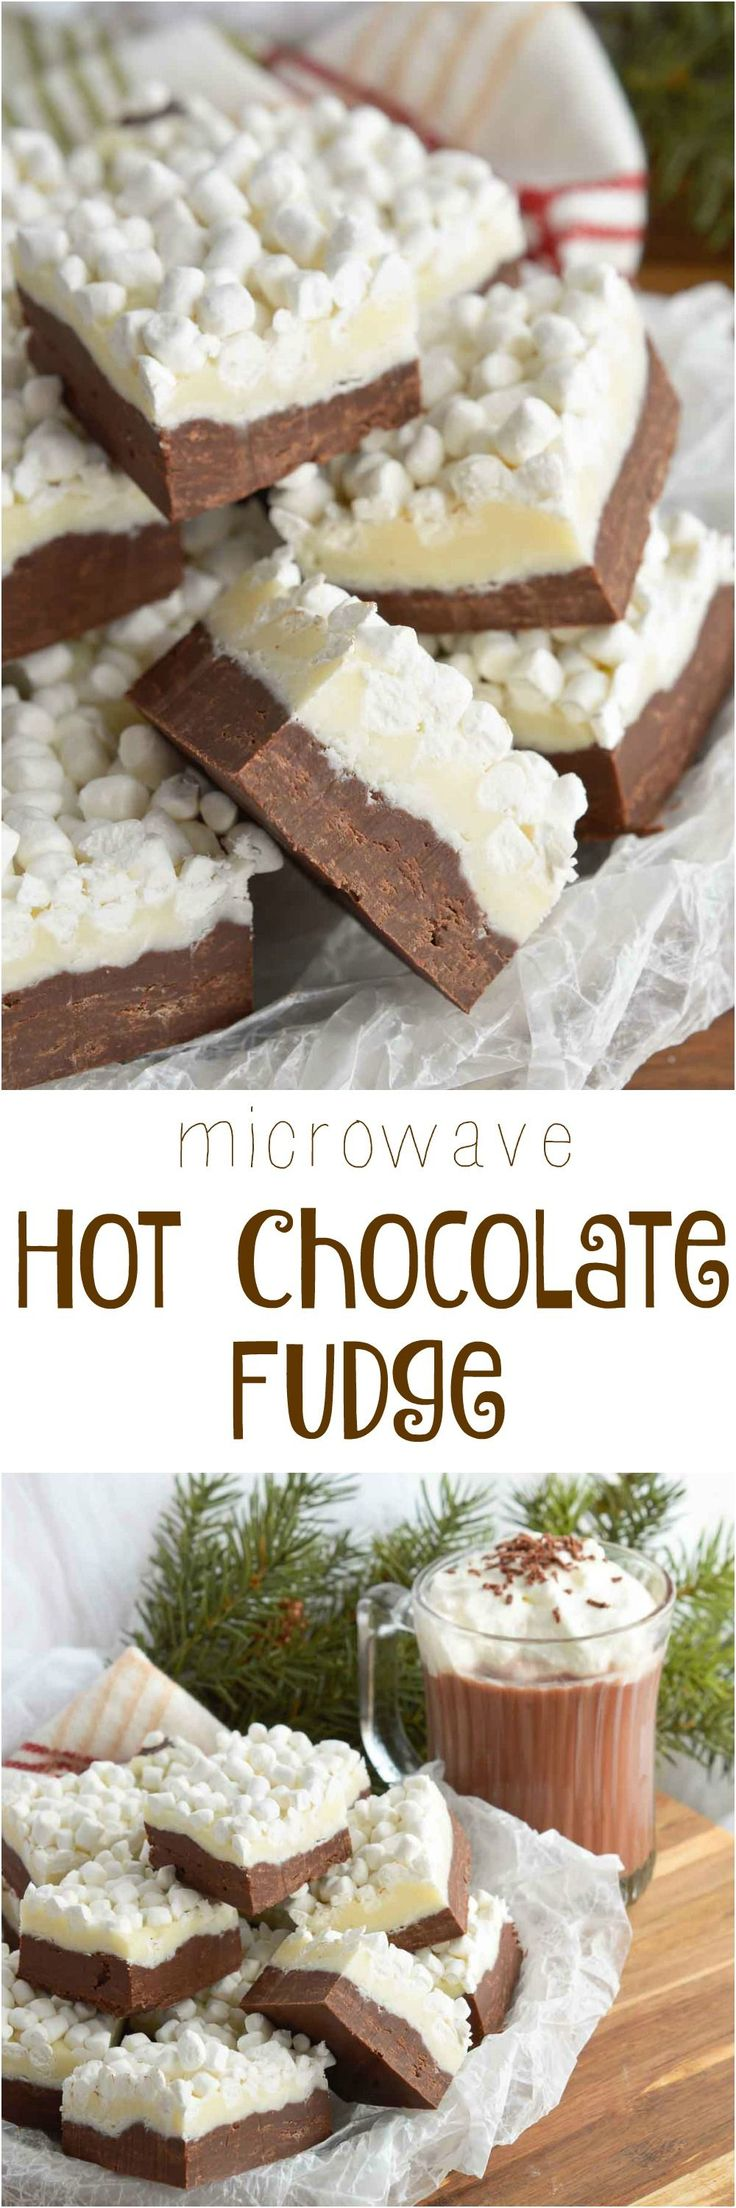 This Hot Chocolate Fudge Recipe brings two of your favorite winter desserts together. Hot cocoa and rich fudge topped with marshmallows! The perfect holiday treat. #holiday #dessert wonkywonderful.com